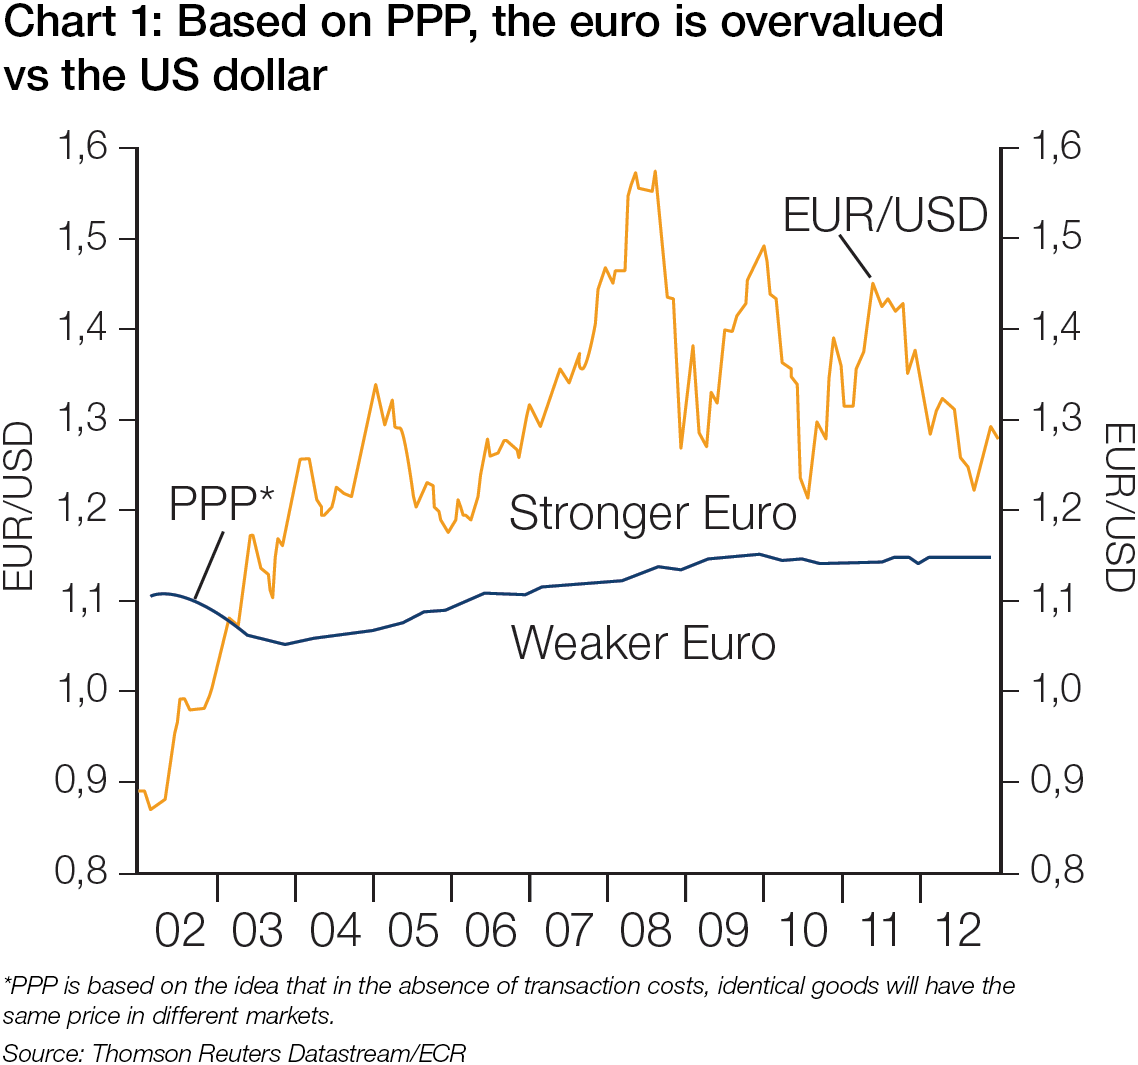 Central banks dont control eurusd treasury today chart 1 based on ppp the euro is overvalued vs the us dollar nvjuhfo Images